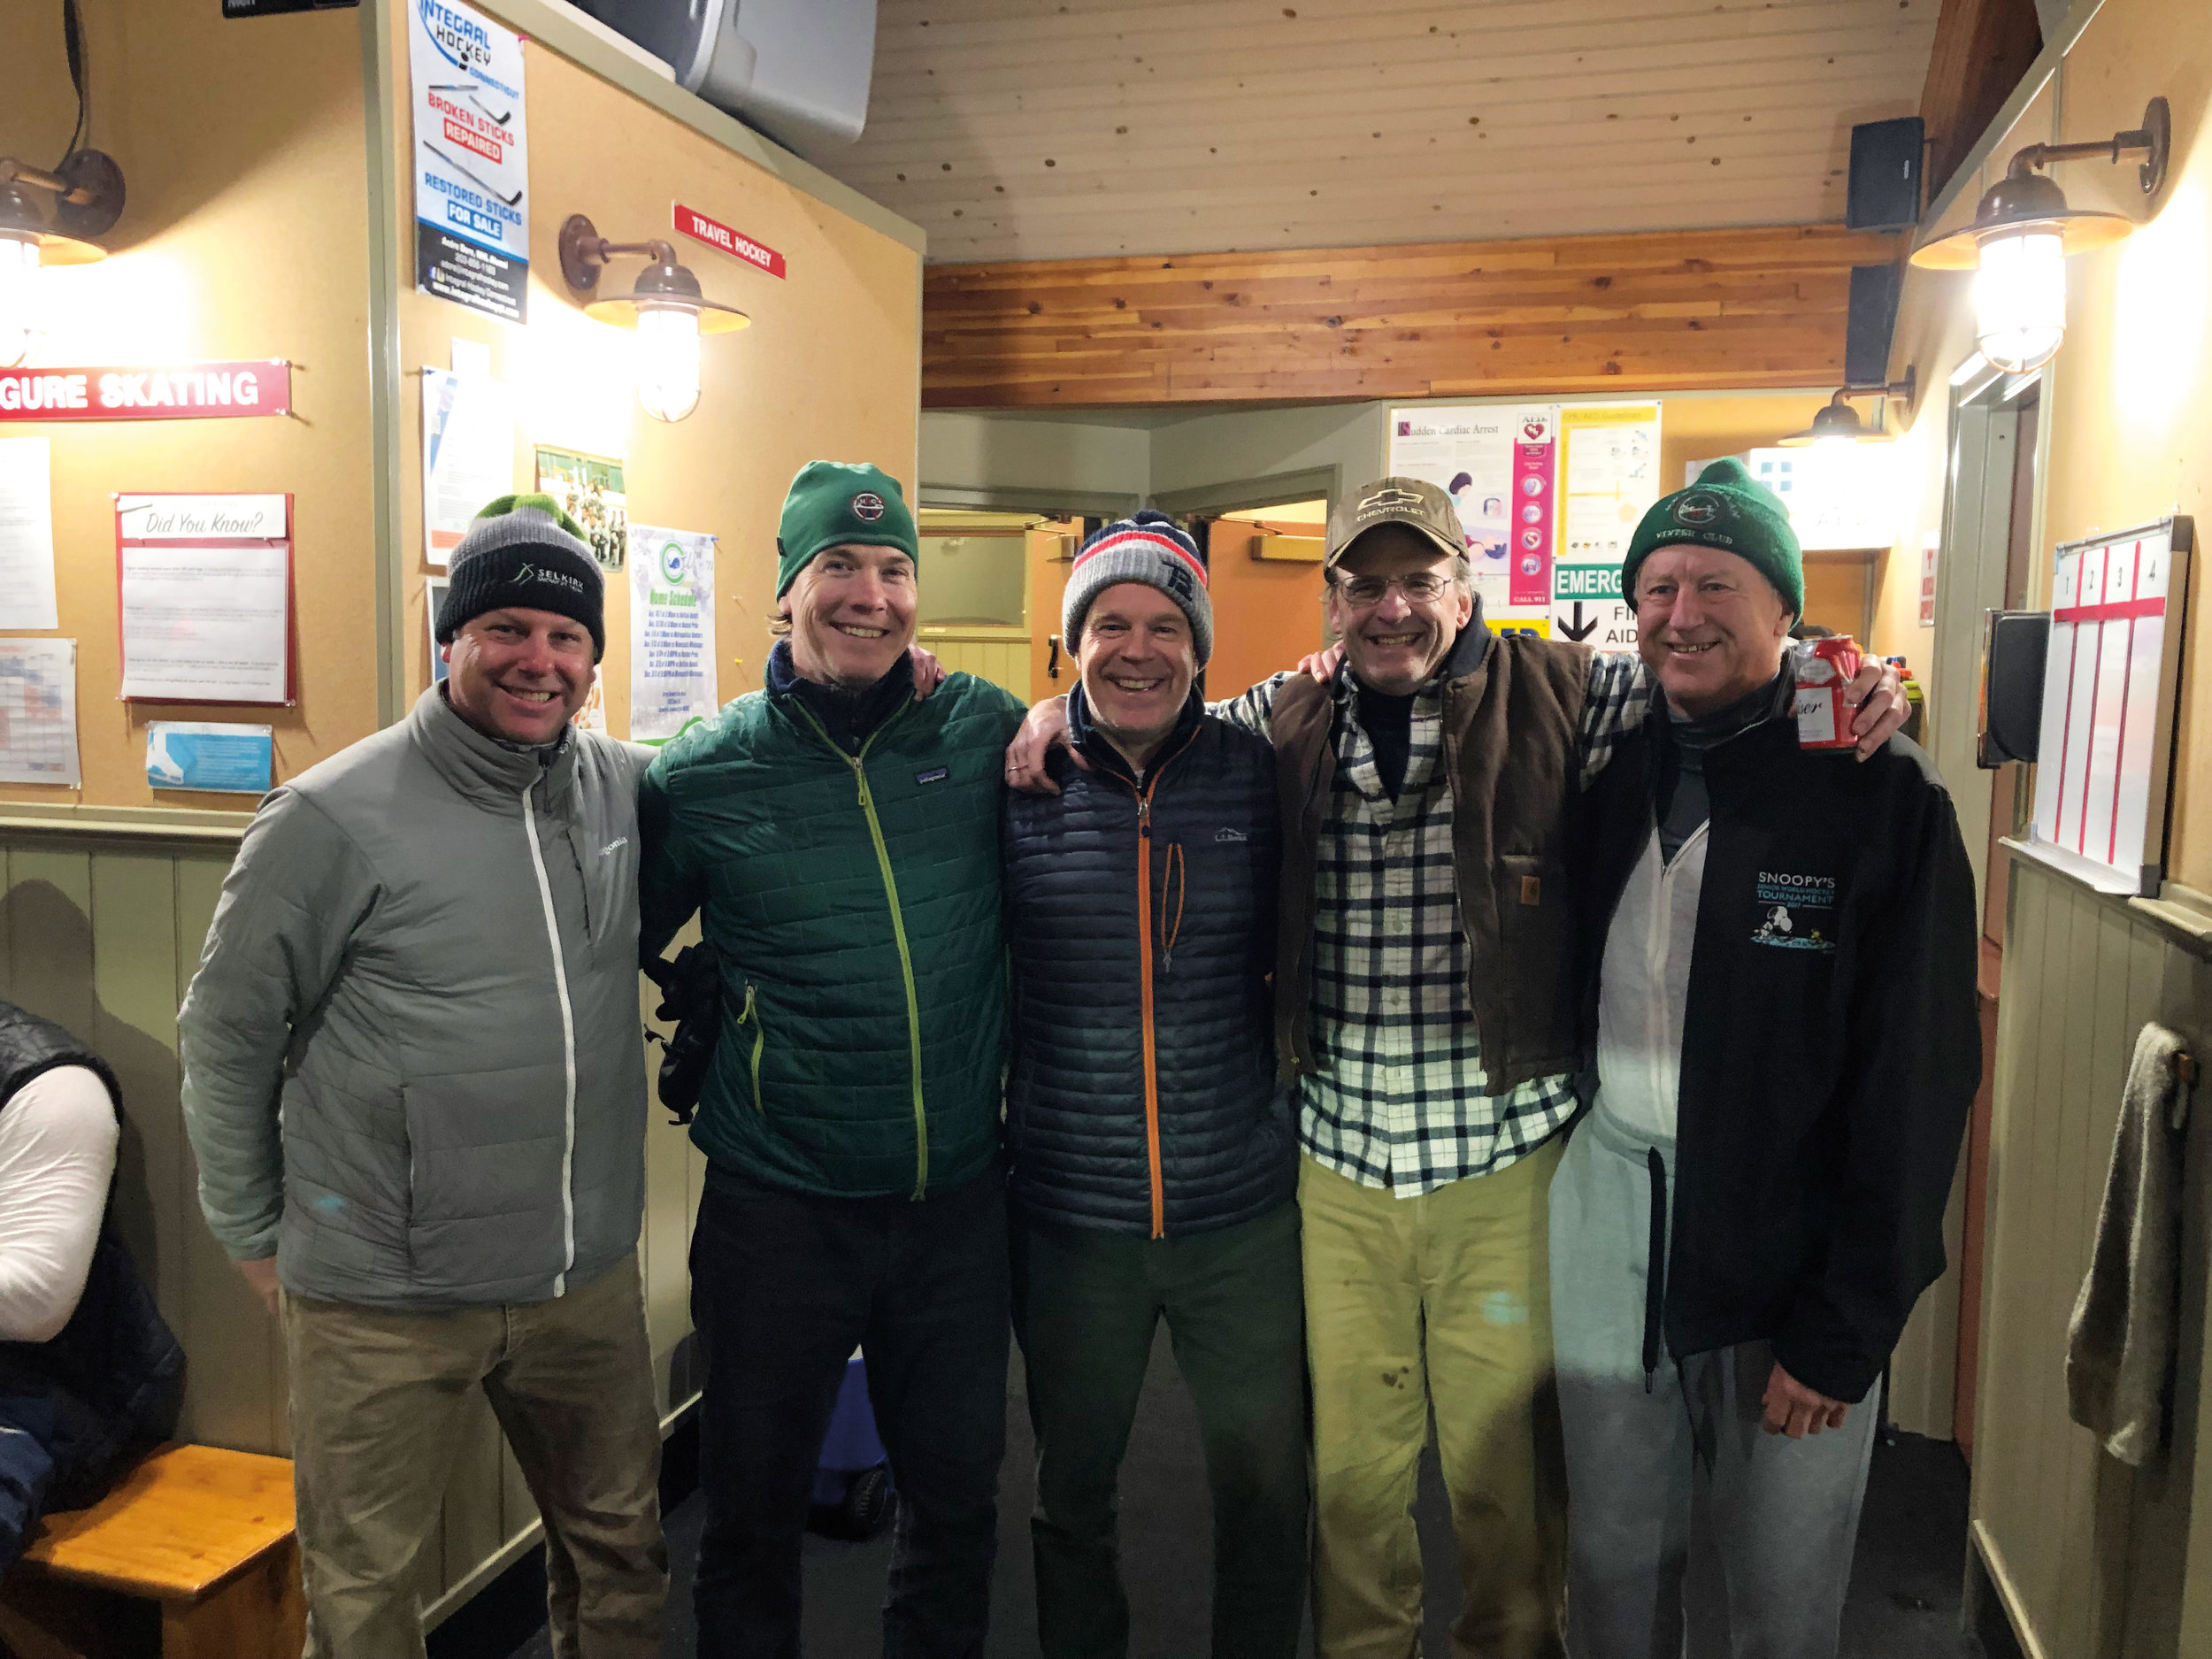 Former SPS hockey greats (l. to r.) Bancroft Jones '88, Joe Zorumski '95, Mason Wells '80, Jon Old '78, and Pete Bostwick '74.